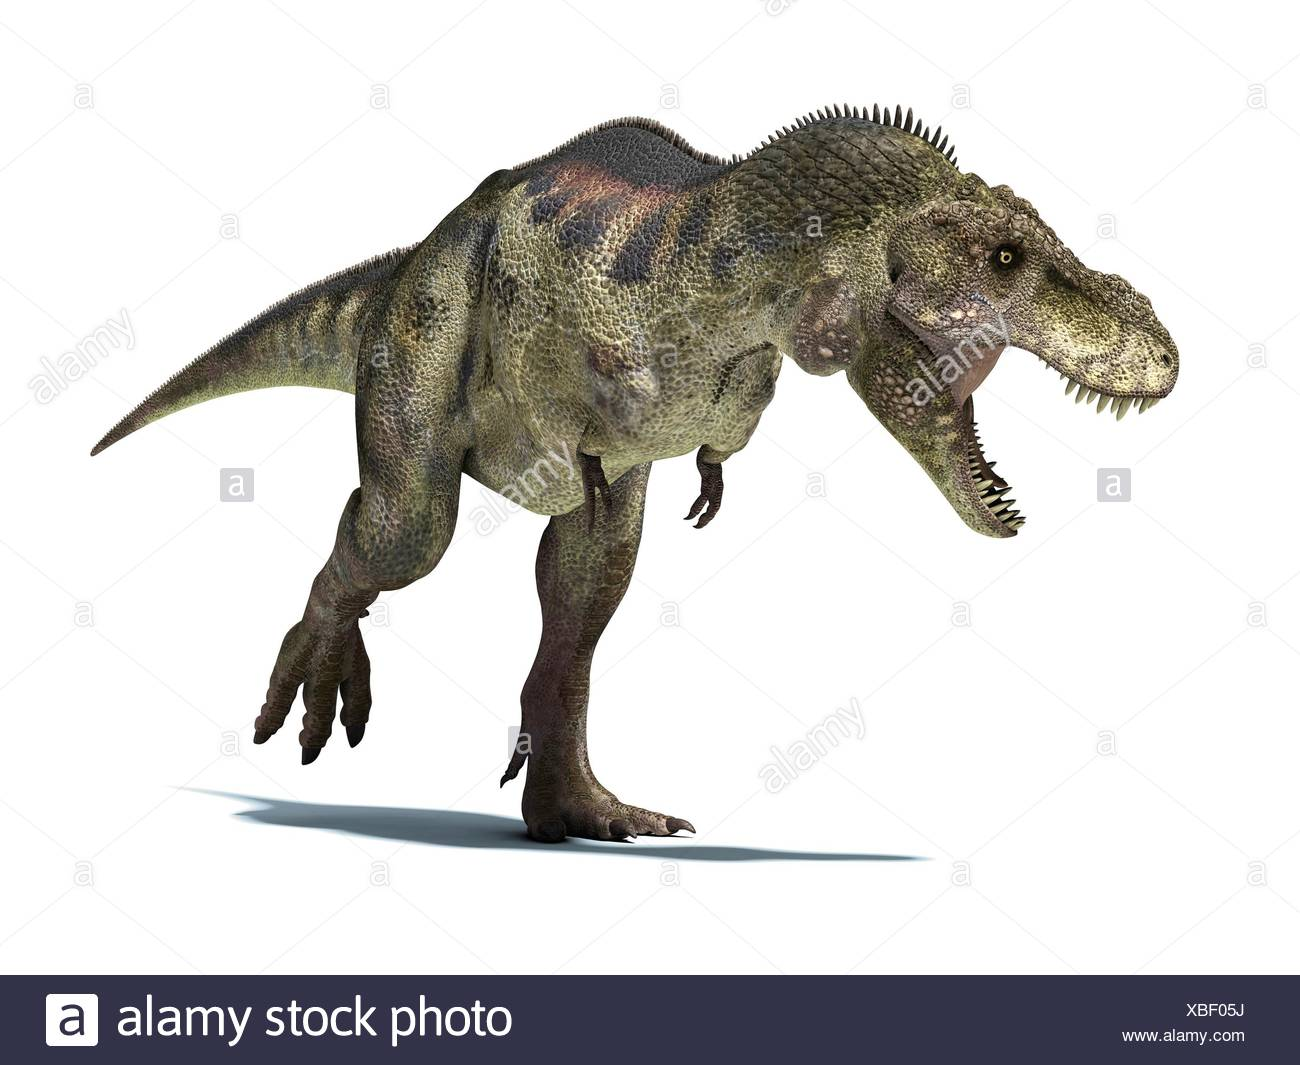 Tyrannosaurus Rex, very well detailed and scientifically correct. isolated on white background with clipping path. - Stock Image